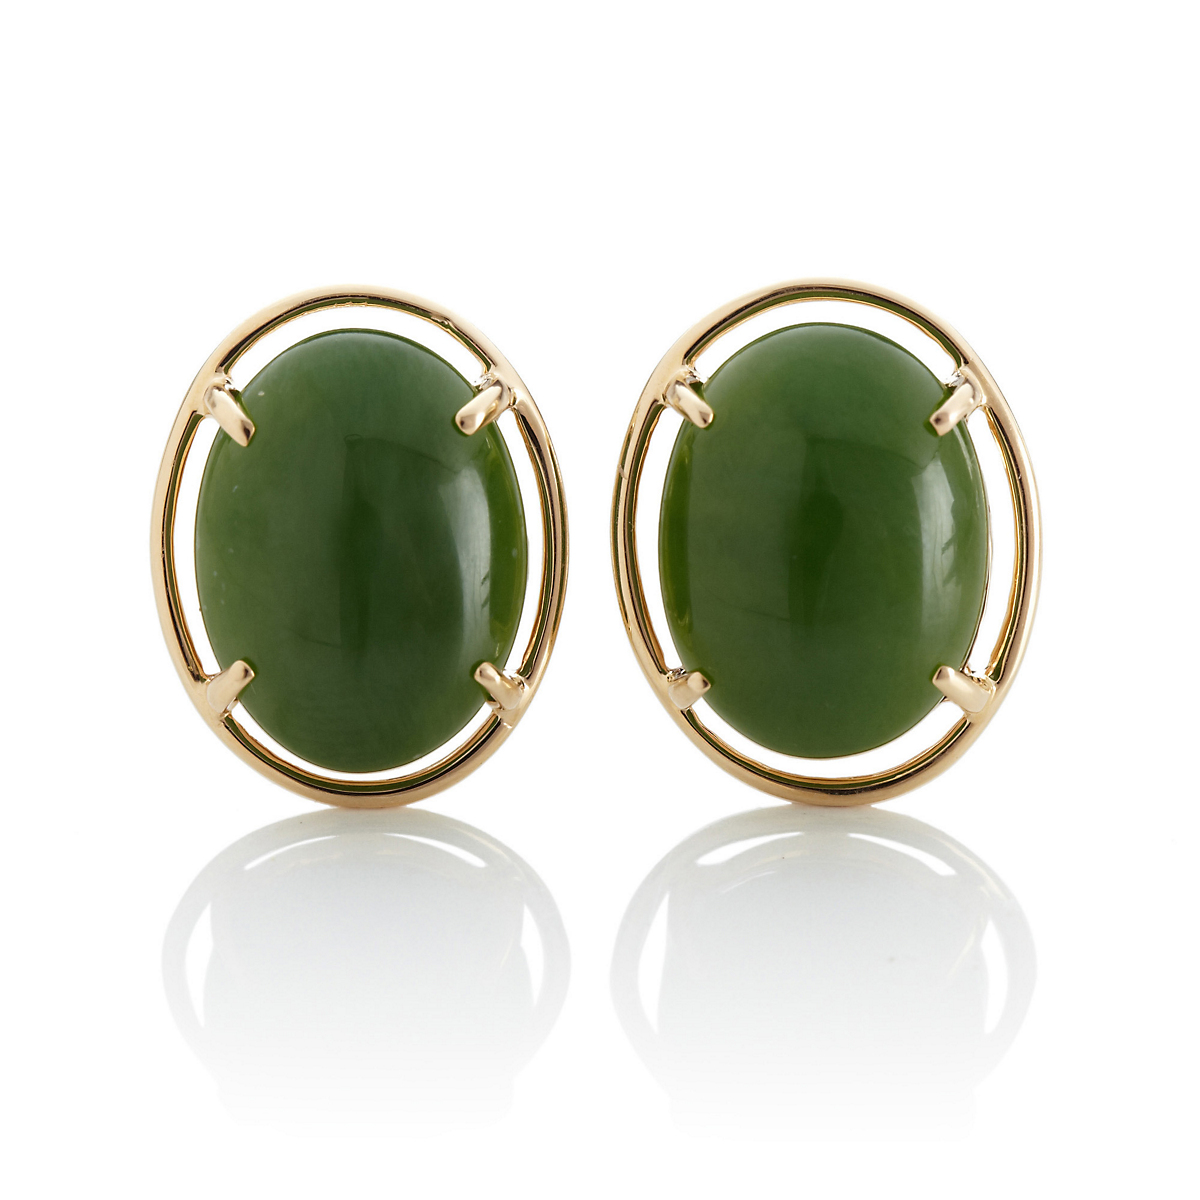 Gump's Green Jade Cabochon Earrings